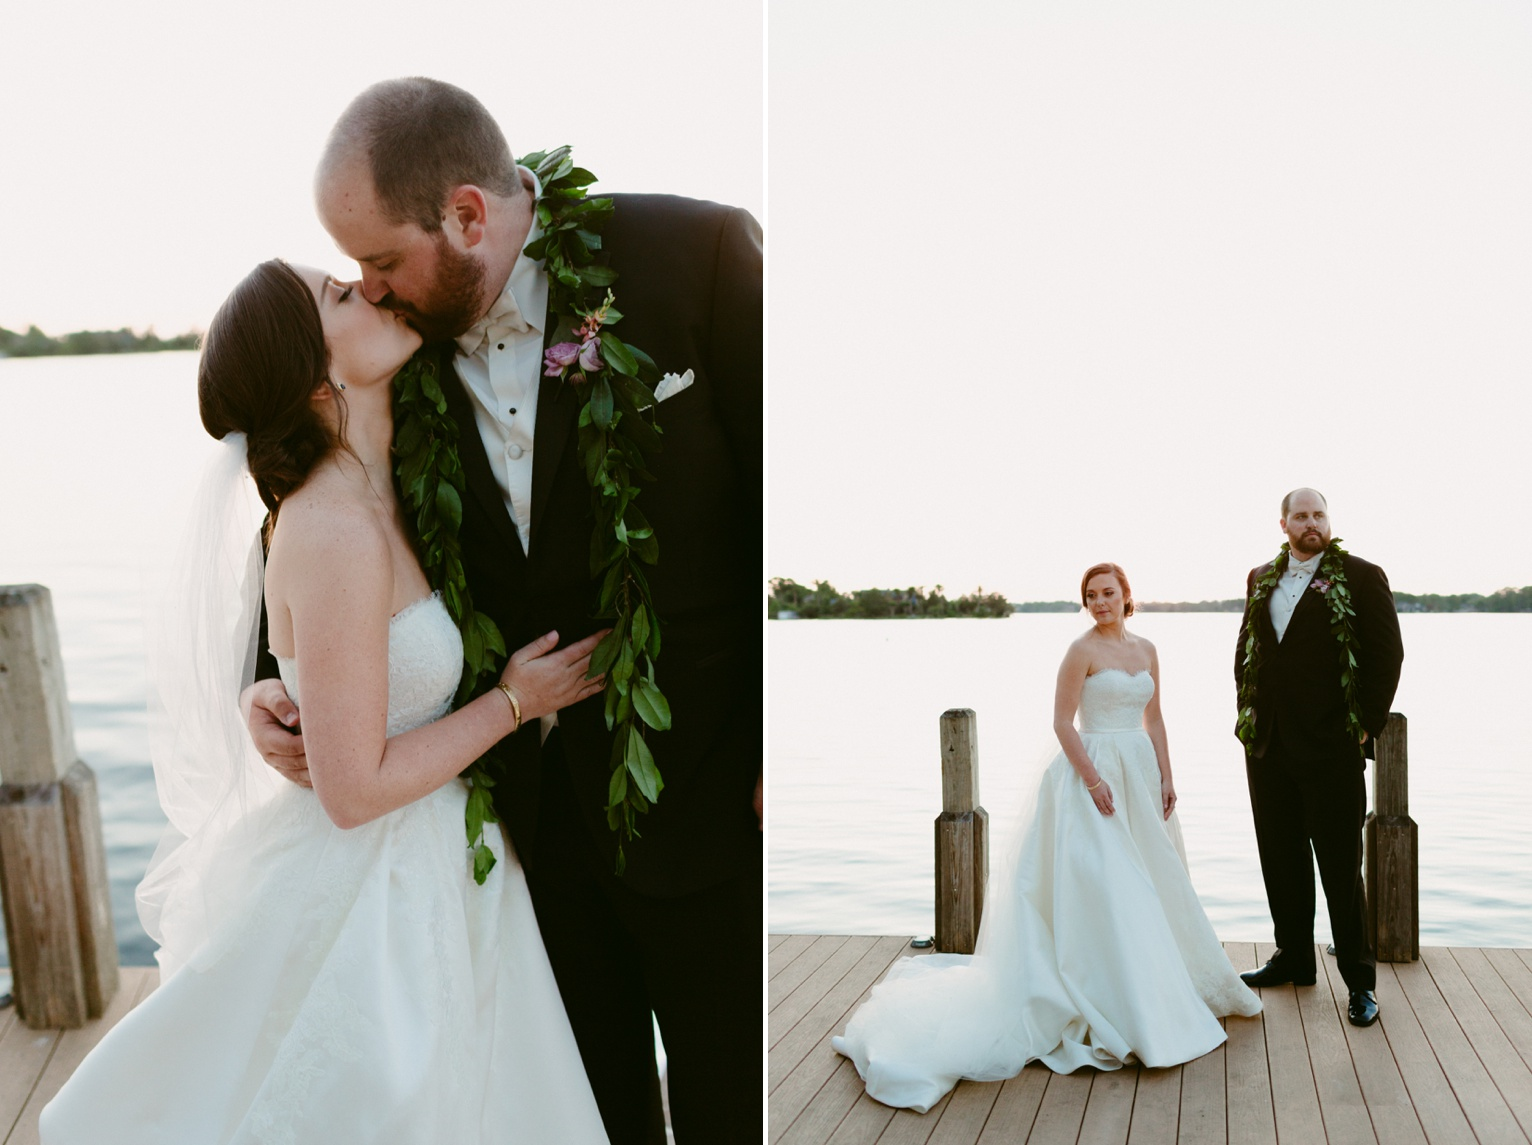 Dreamtownco.com_blog_David&Kiana_Wedding_0113.jpg